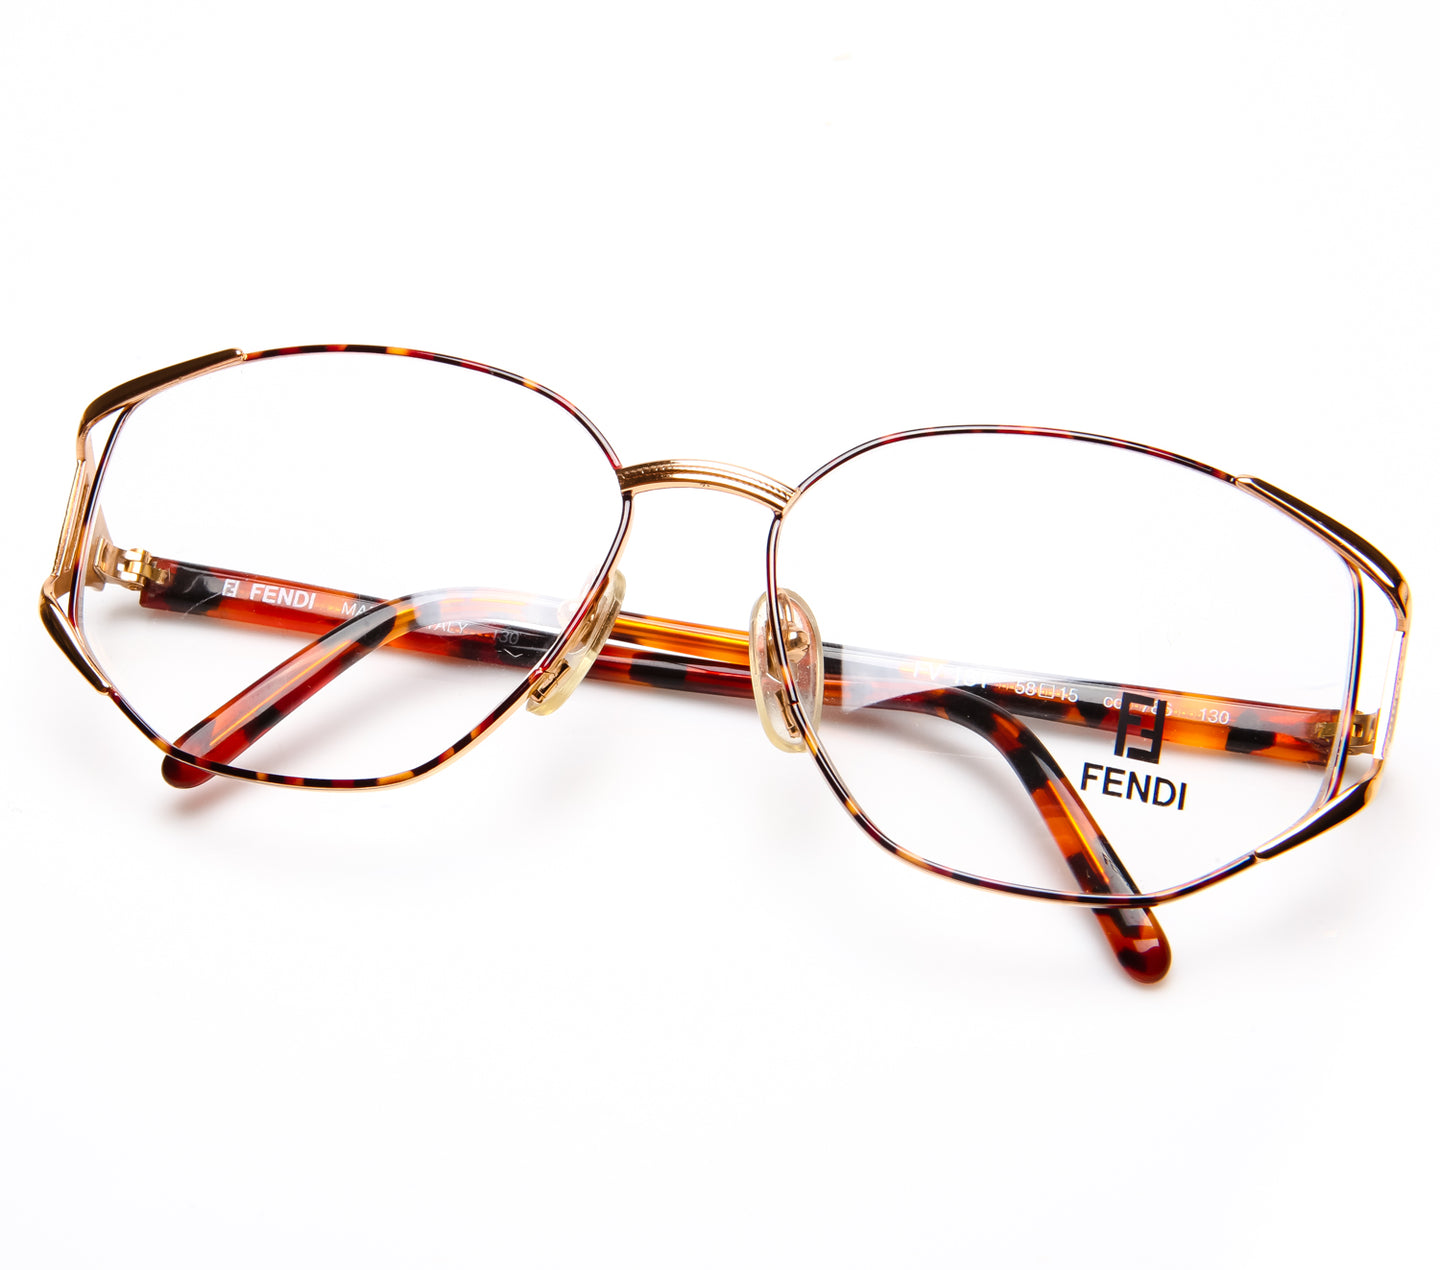 Fendi FV 181 786, Fendi , glasses frames, eyeglasses online, eyeglass frames, mens glasses, womens glasses, buy glasses online, designer eyeglasses, vintage sunglasses, retro sunglasses, vintage glasses, sunglass, eyeglass, glasses, lens, vintage frames company, vf